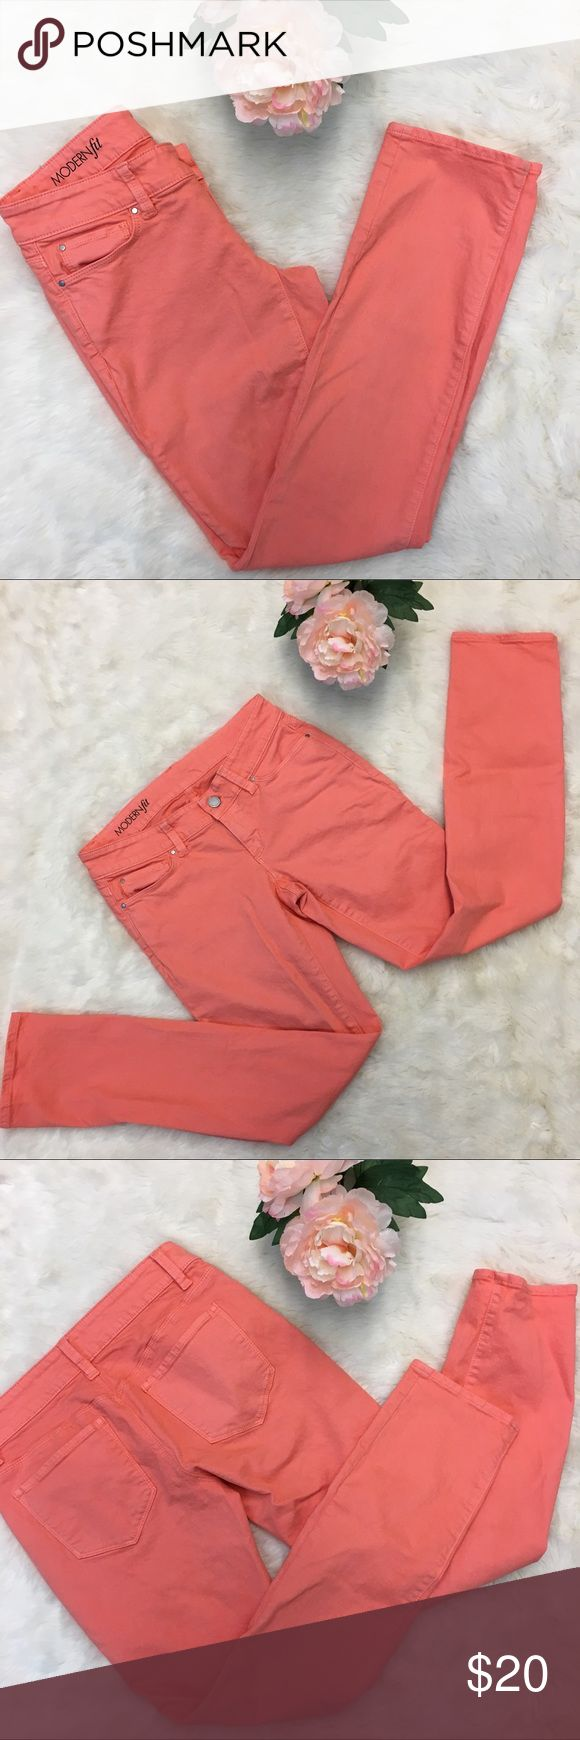 Ann Taylor Modern Fit Coral Skinny Jeans EUC Ann Taylor Modern Fit Coral Skinny Jeans. Straighter fit through hip and thigh. Size is 2P (petite) but fit a size 2. Can roll up or leave them as is. Ann Taylor Jeans